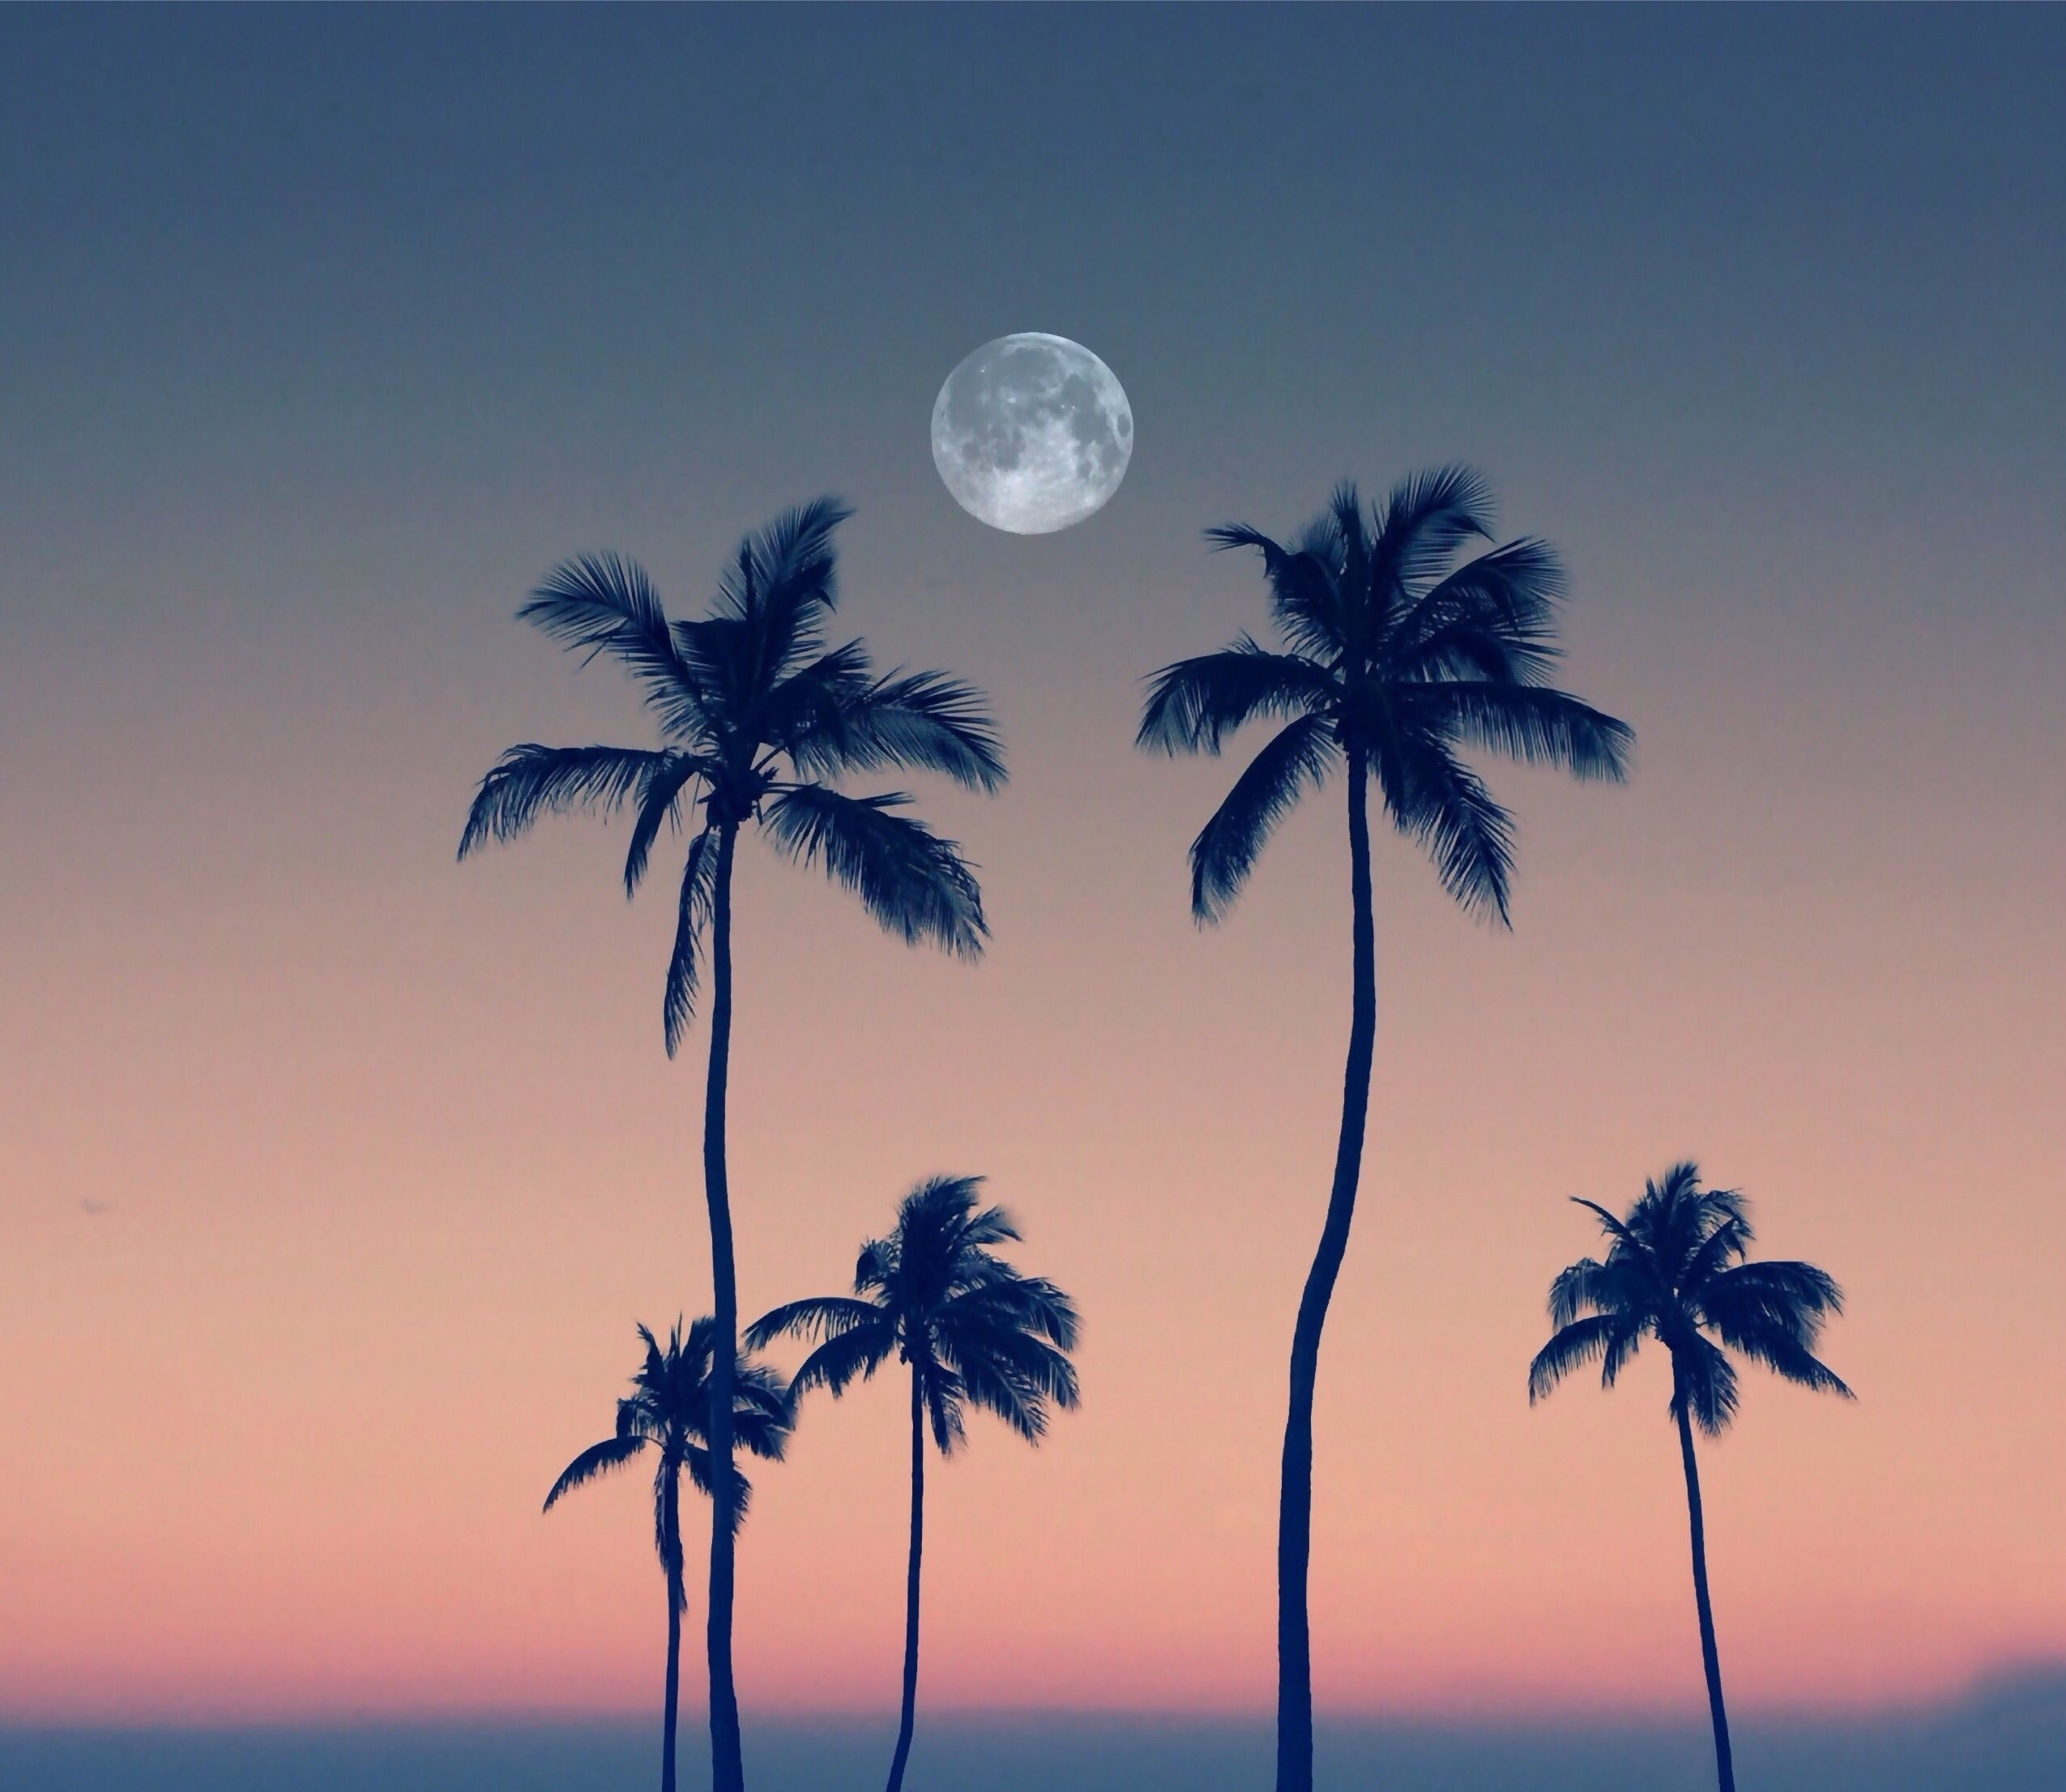 Palm Tree Iphone Wallpaper: The Moon Rises Between The Palm Trees On Fort Lauderdale